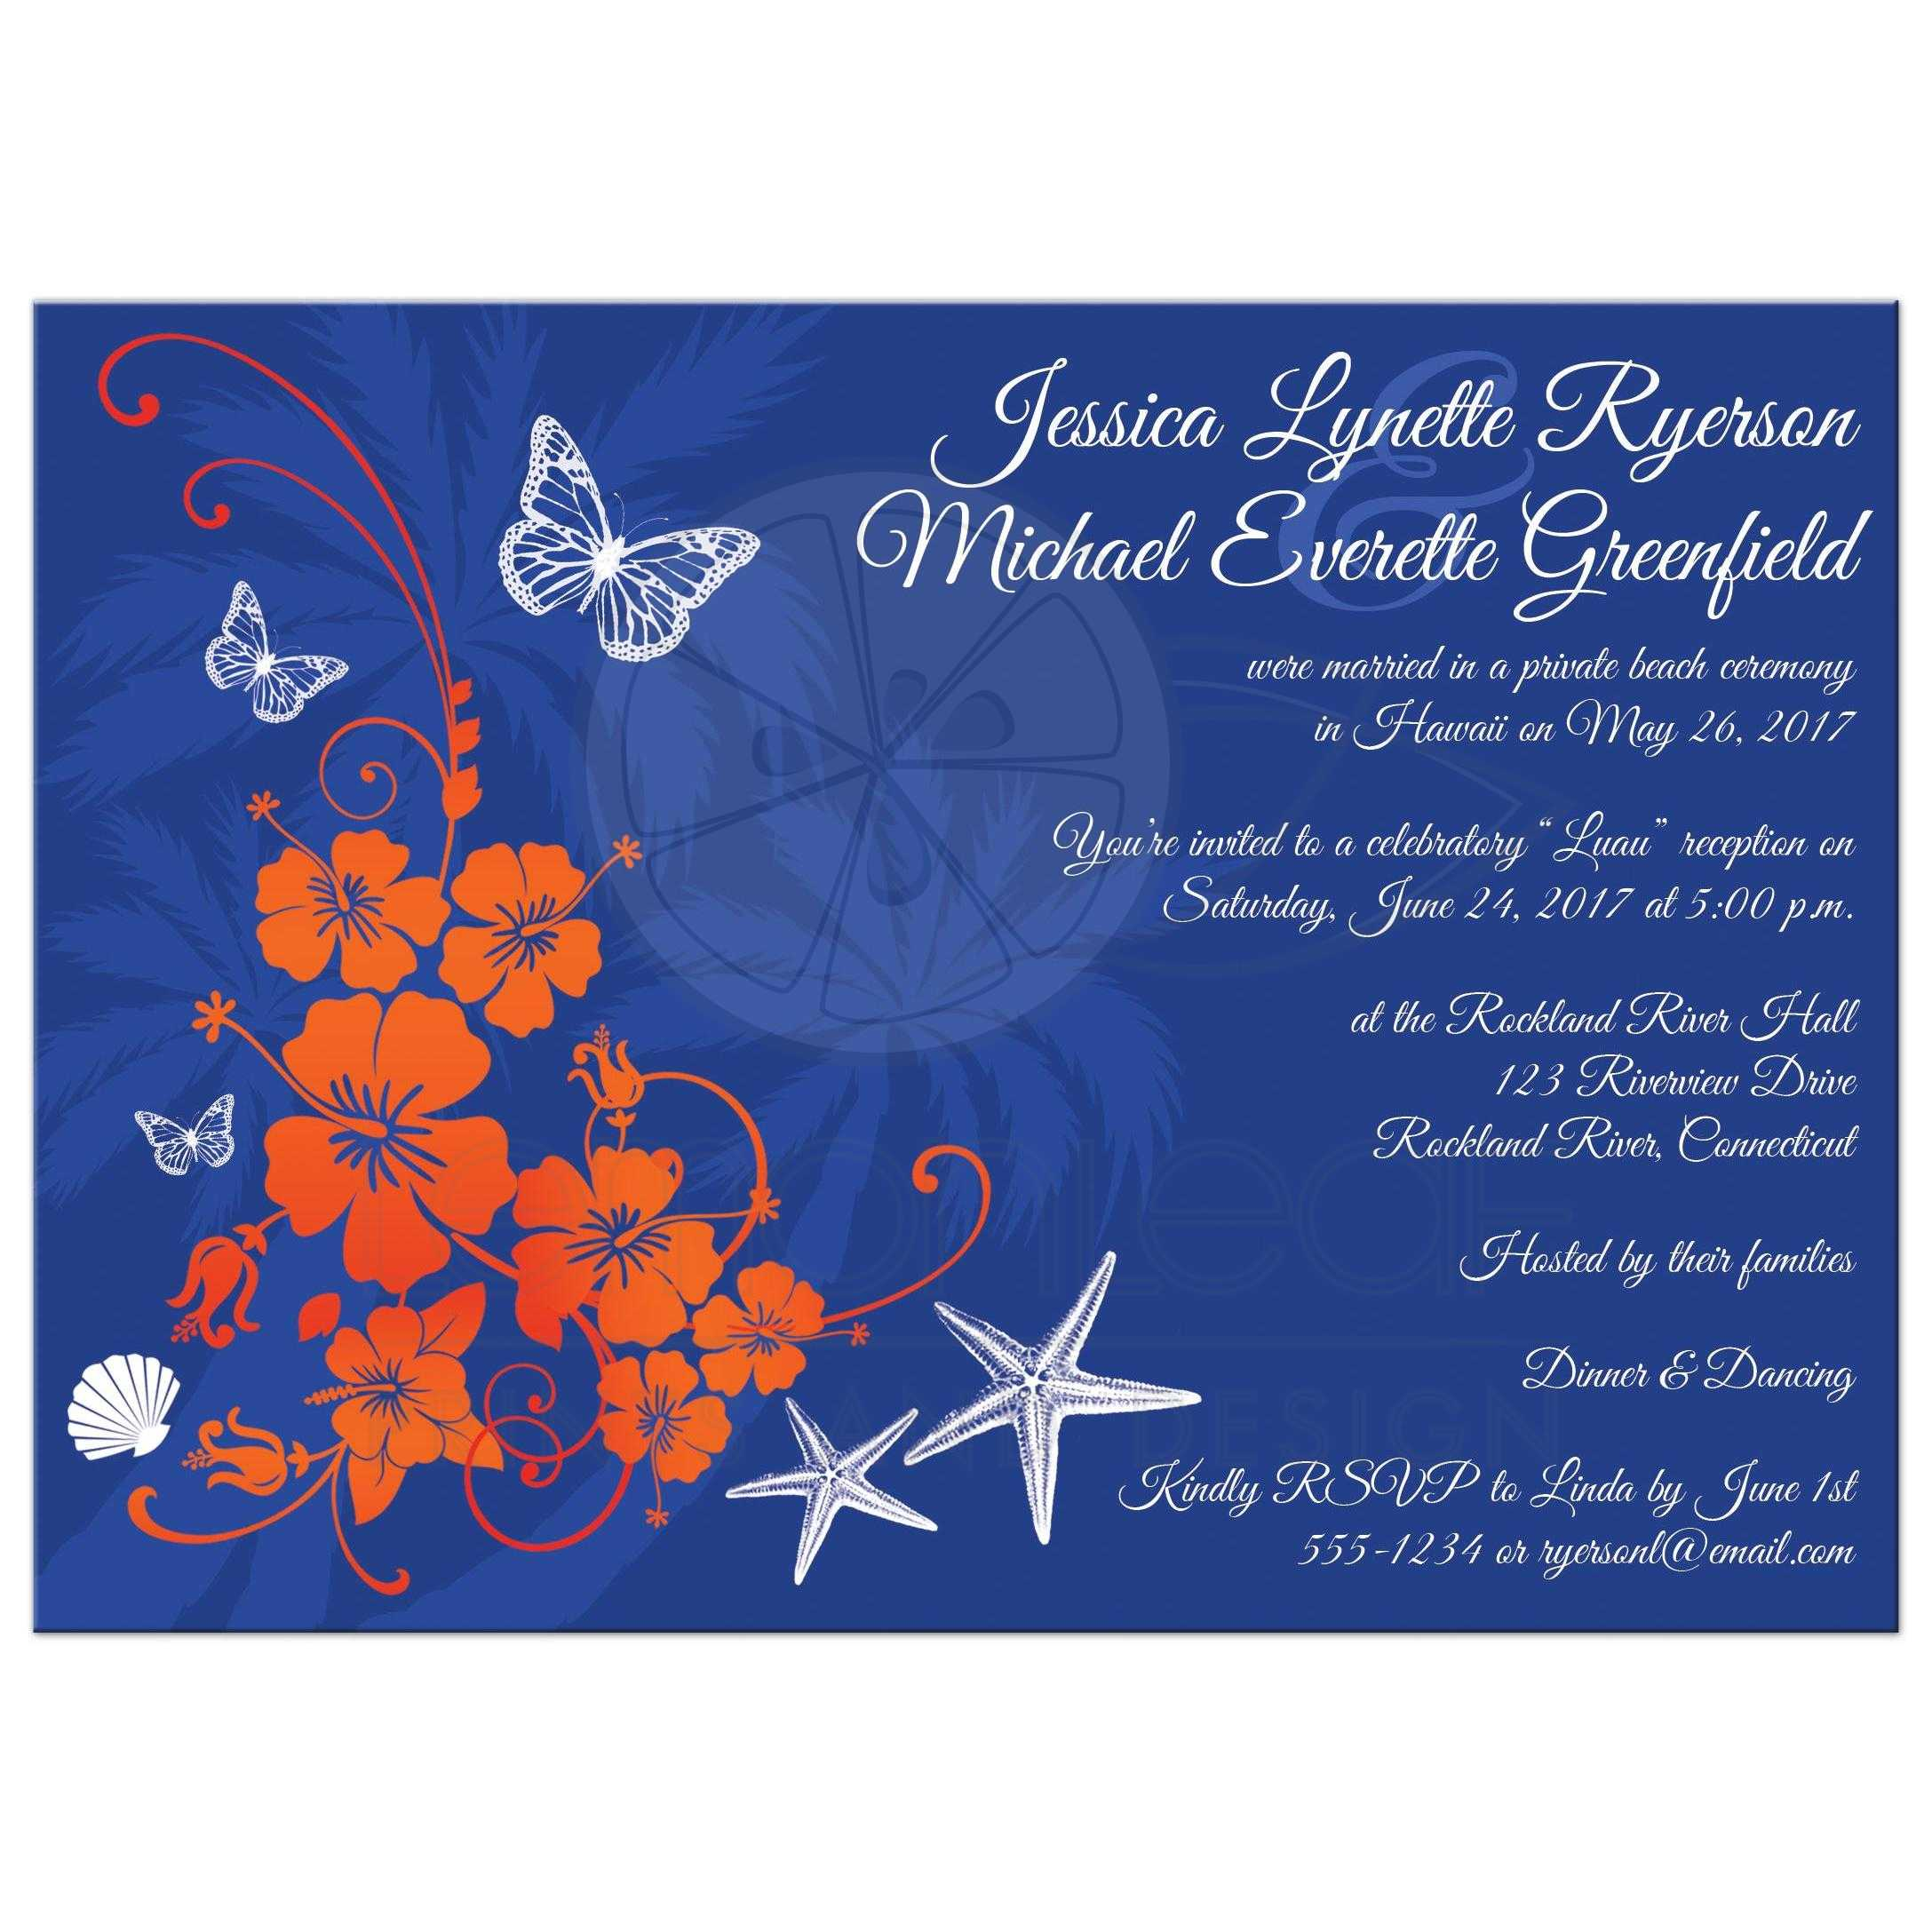 Post Wedding Reception Invitation | Blue, Orange, White Tropical Floral, Butterflies, Sea Shells